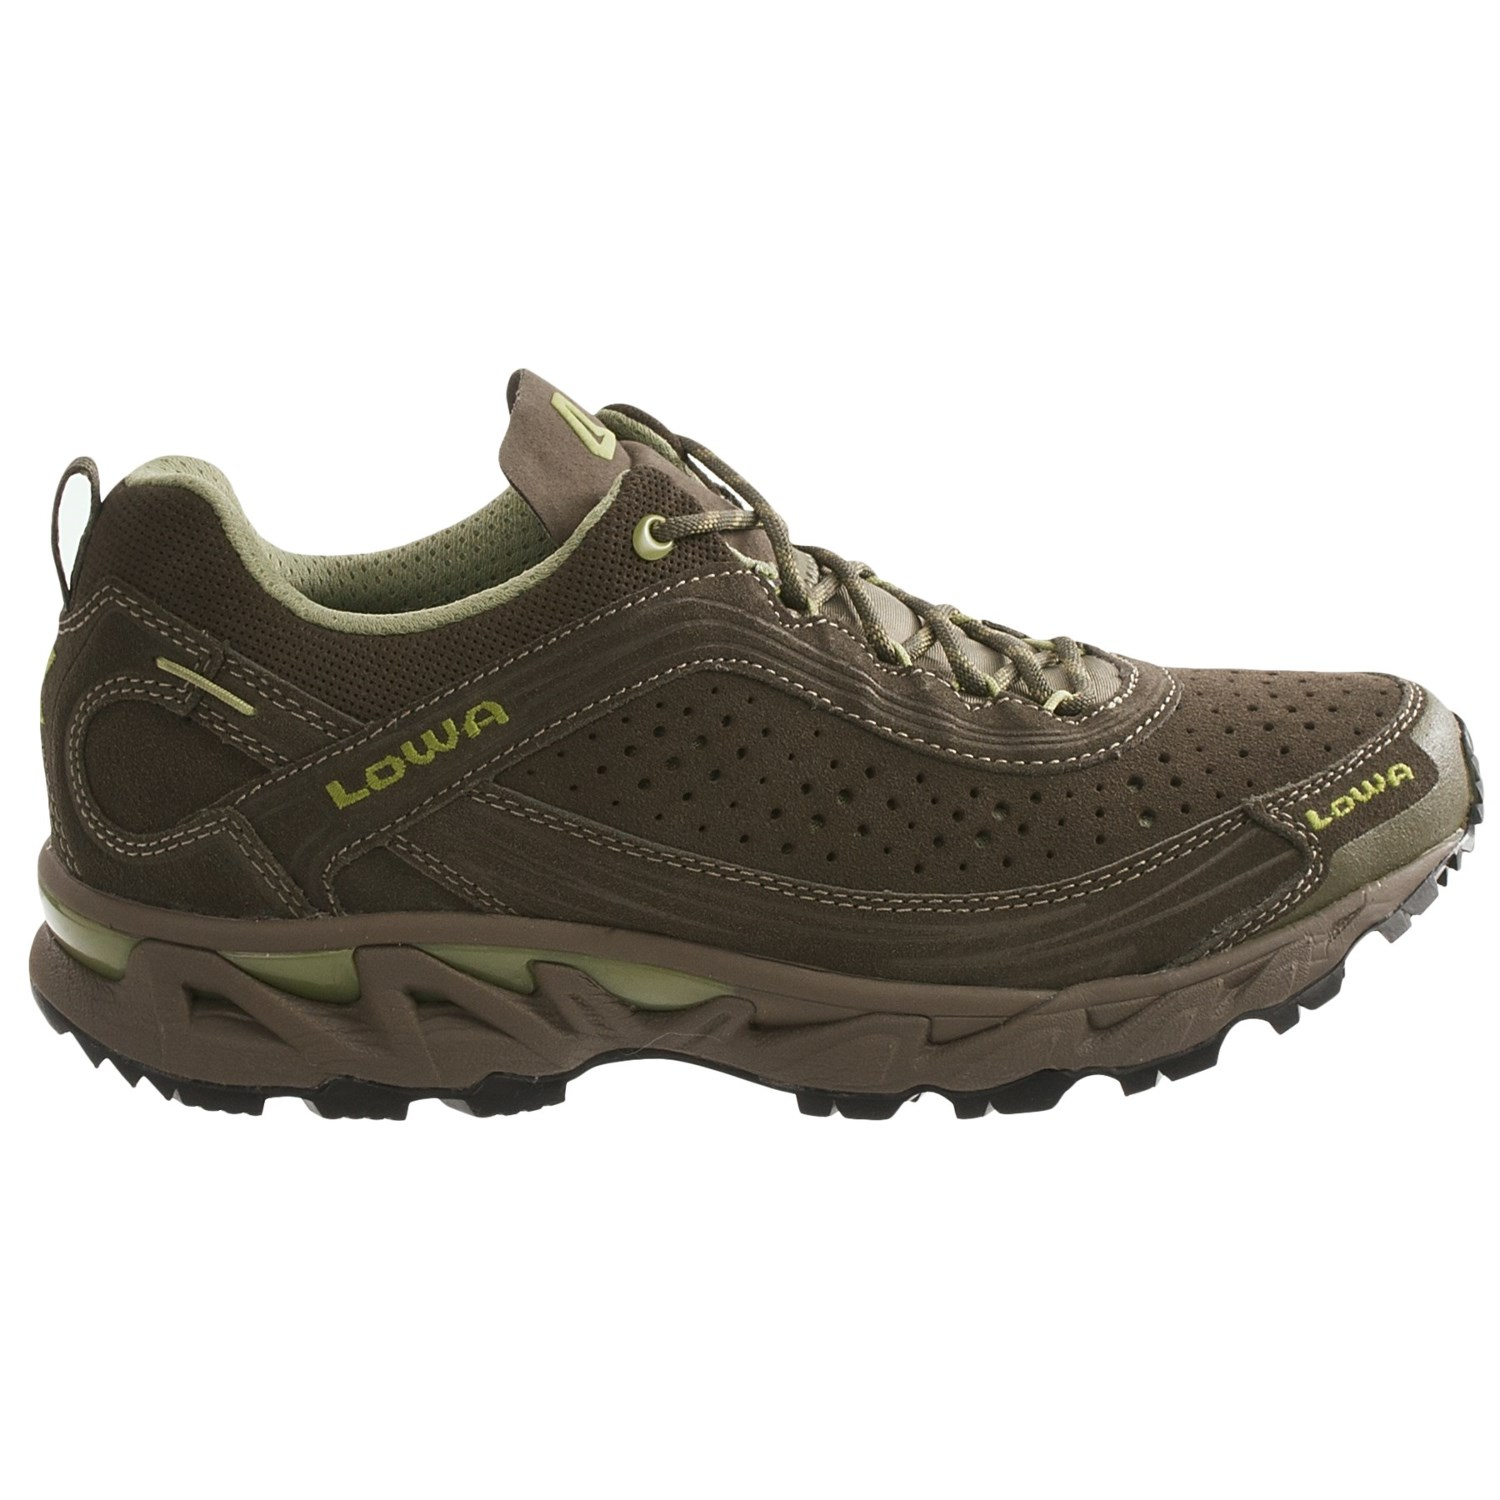 Lowa S Cloud Trail Shoes